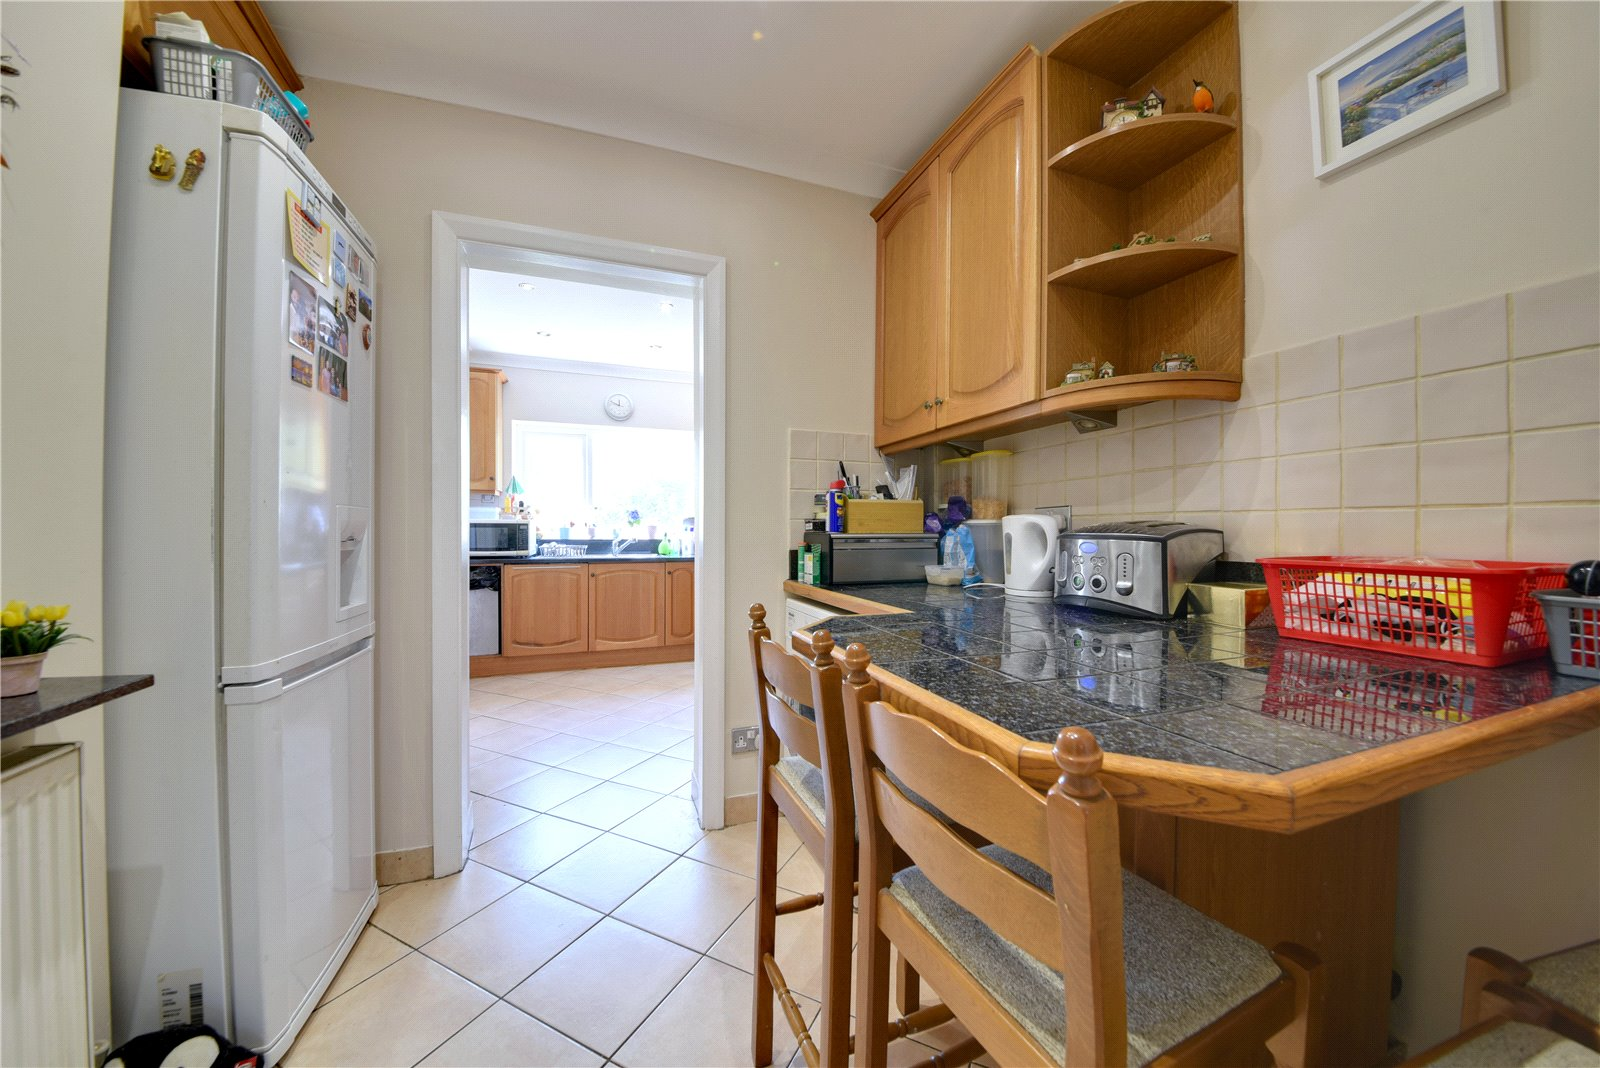 3 bed house for sale in Southgate, N14 4NY  - Property Image 3